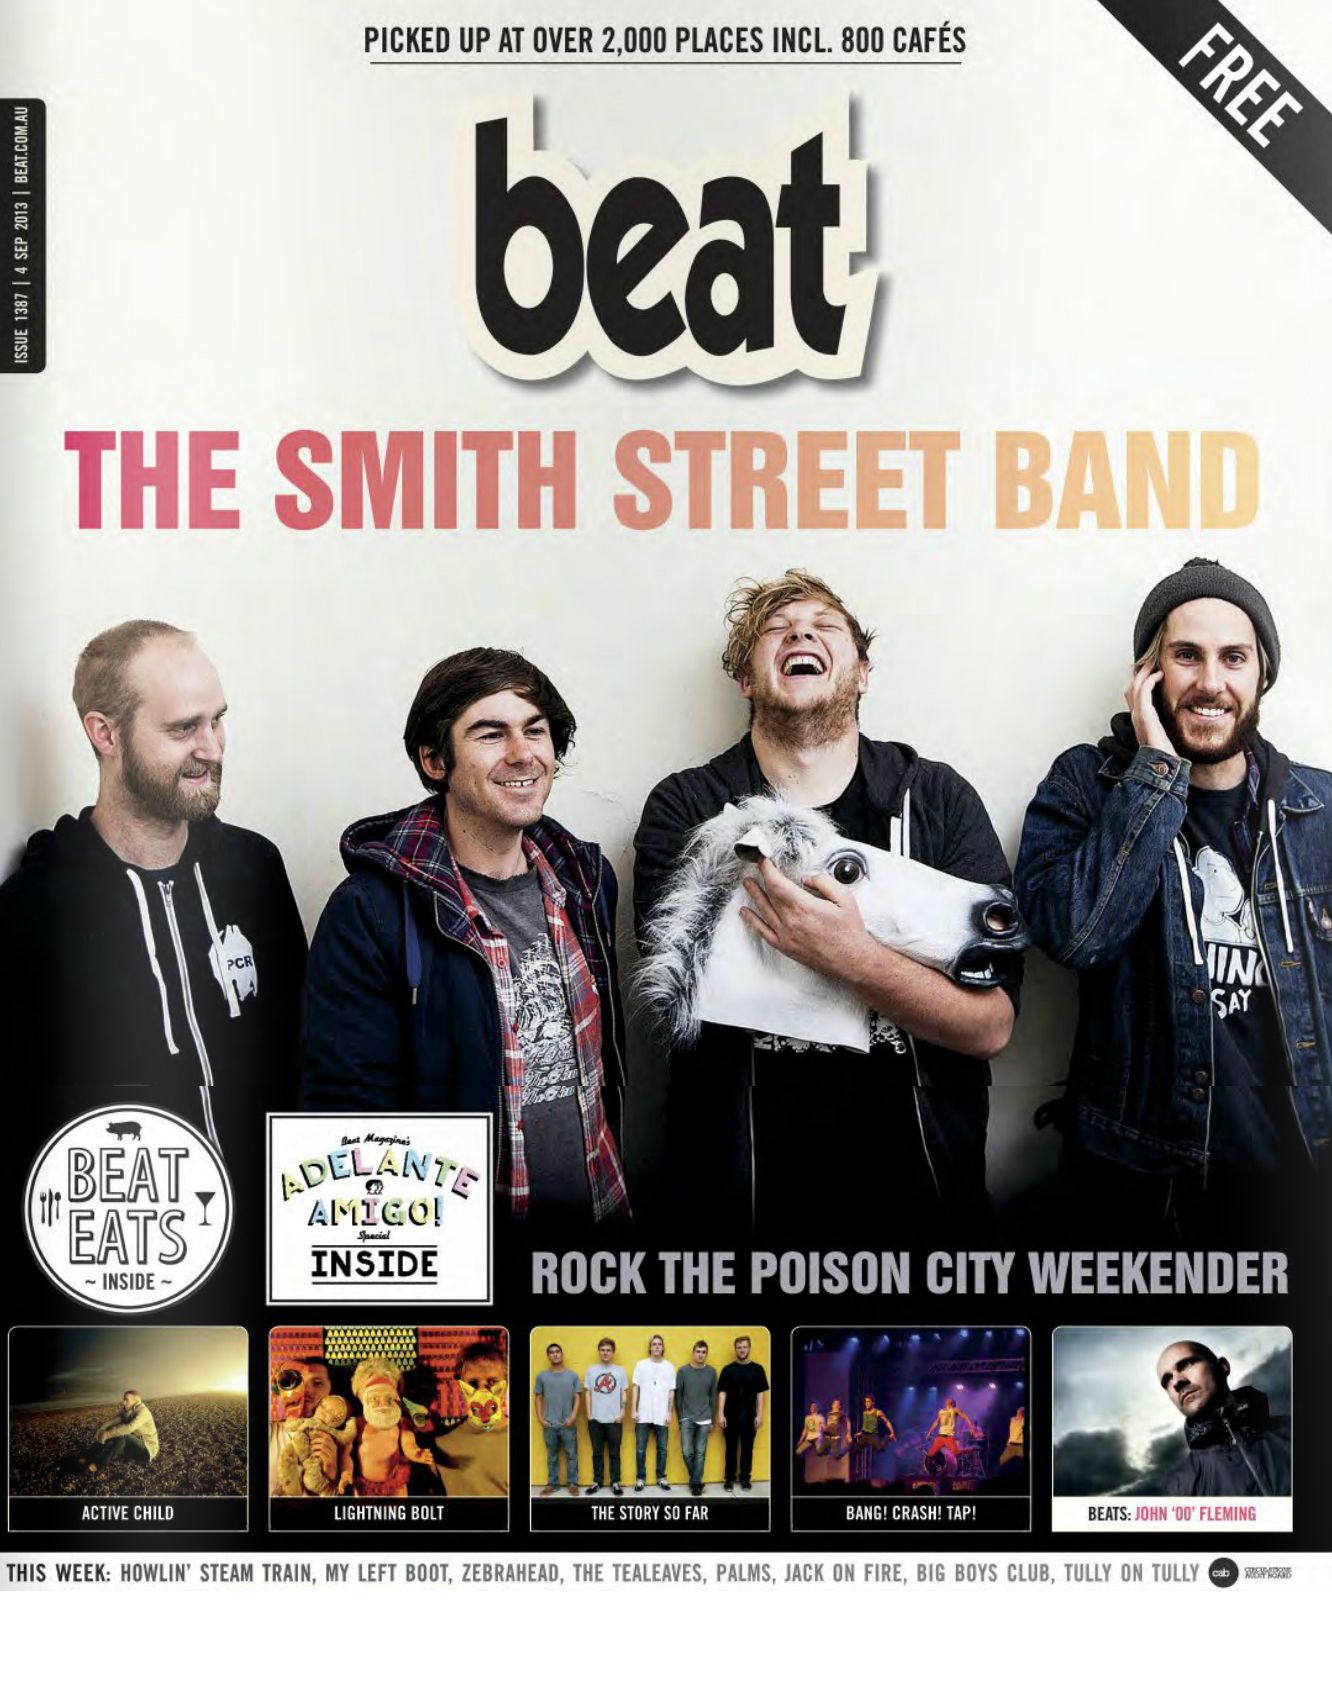 Beat Magazine Cover! September 4th, 2013 Free beats